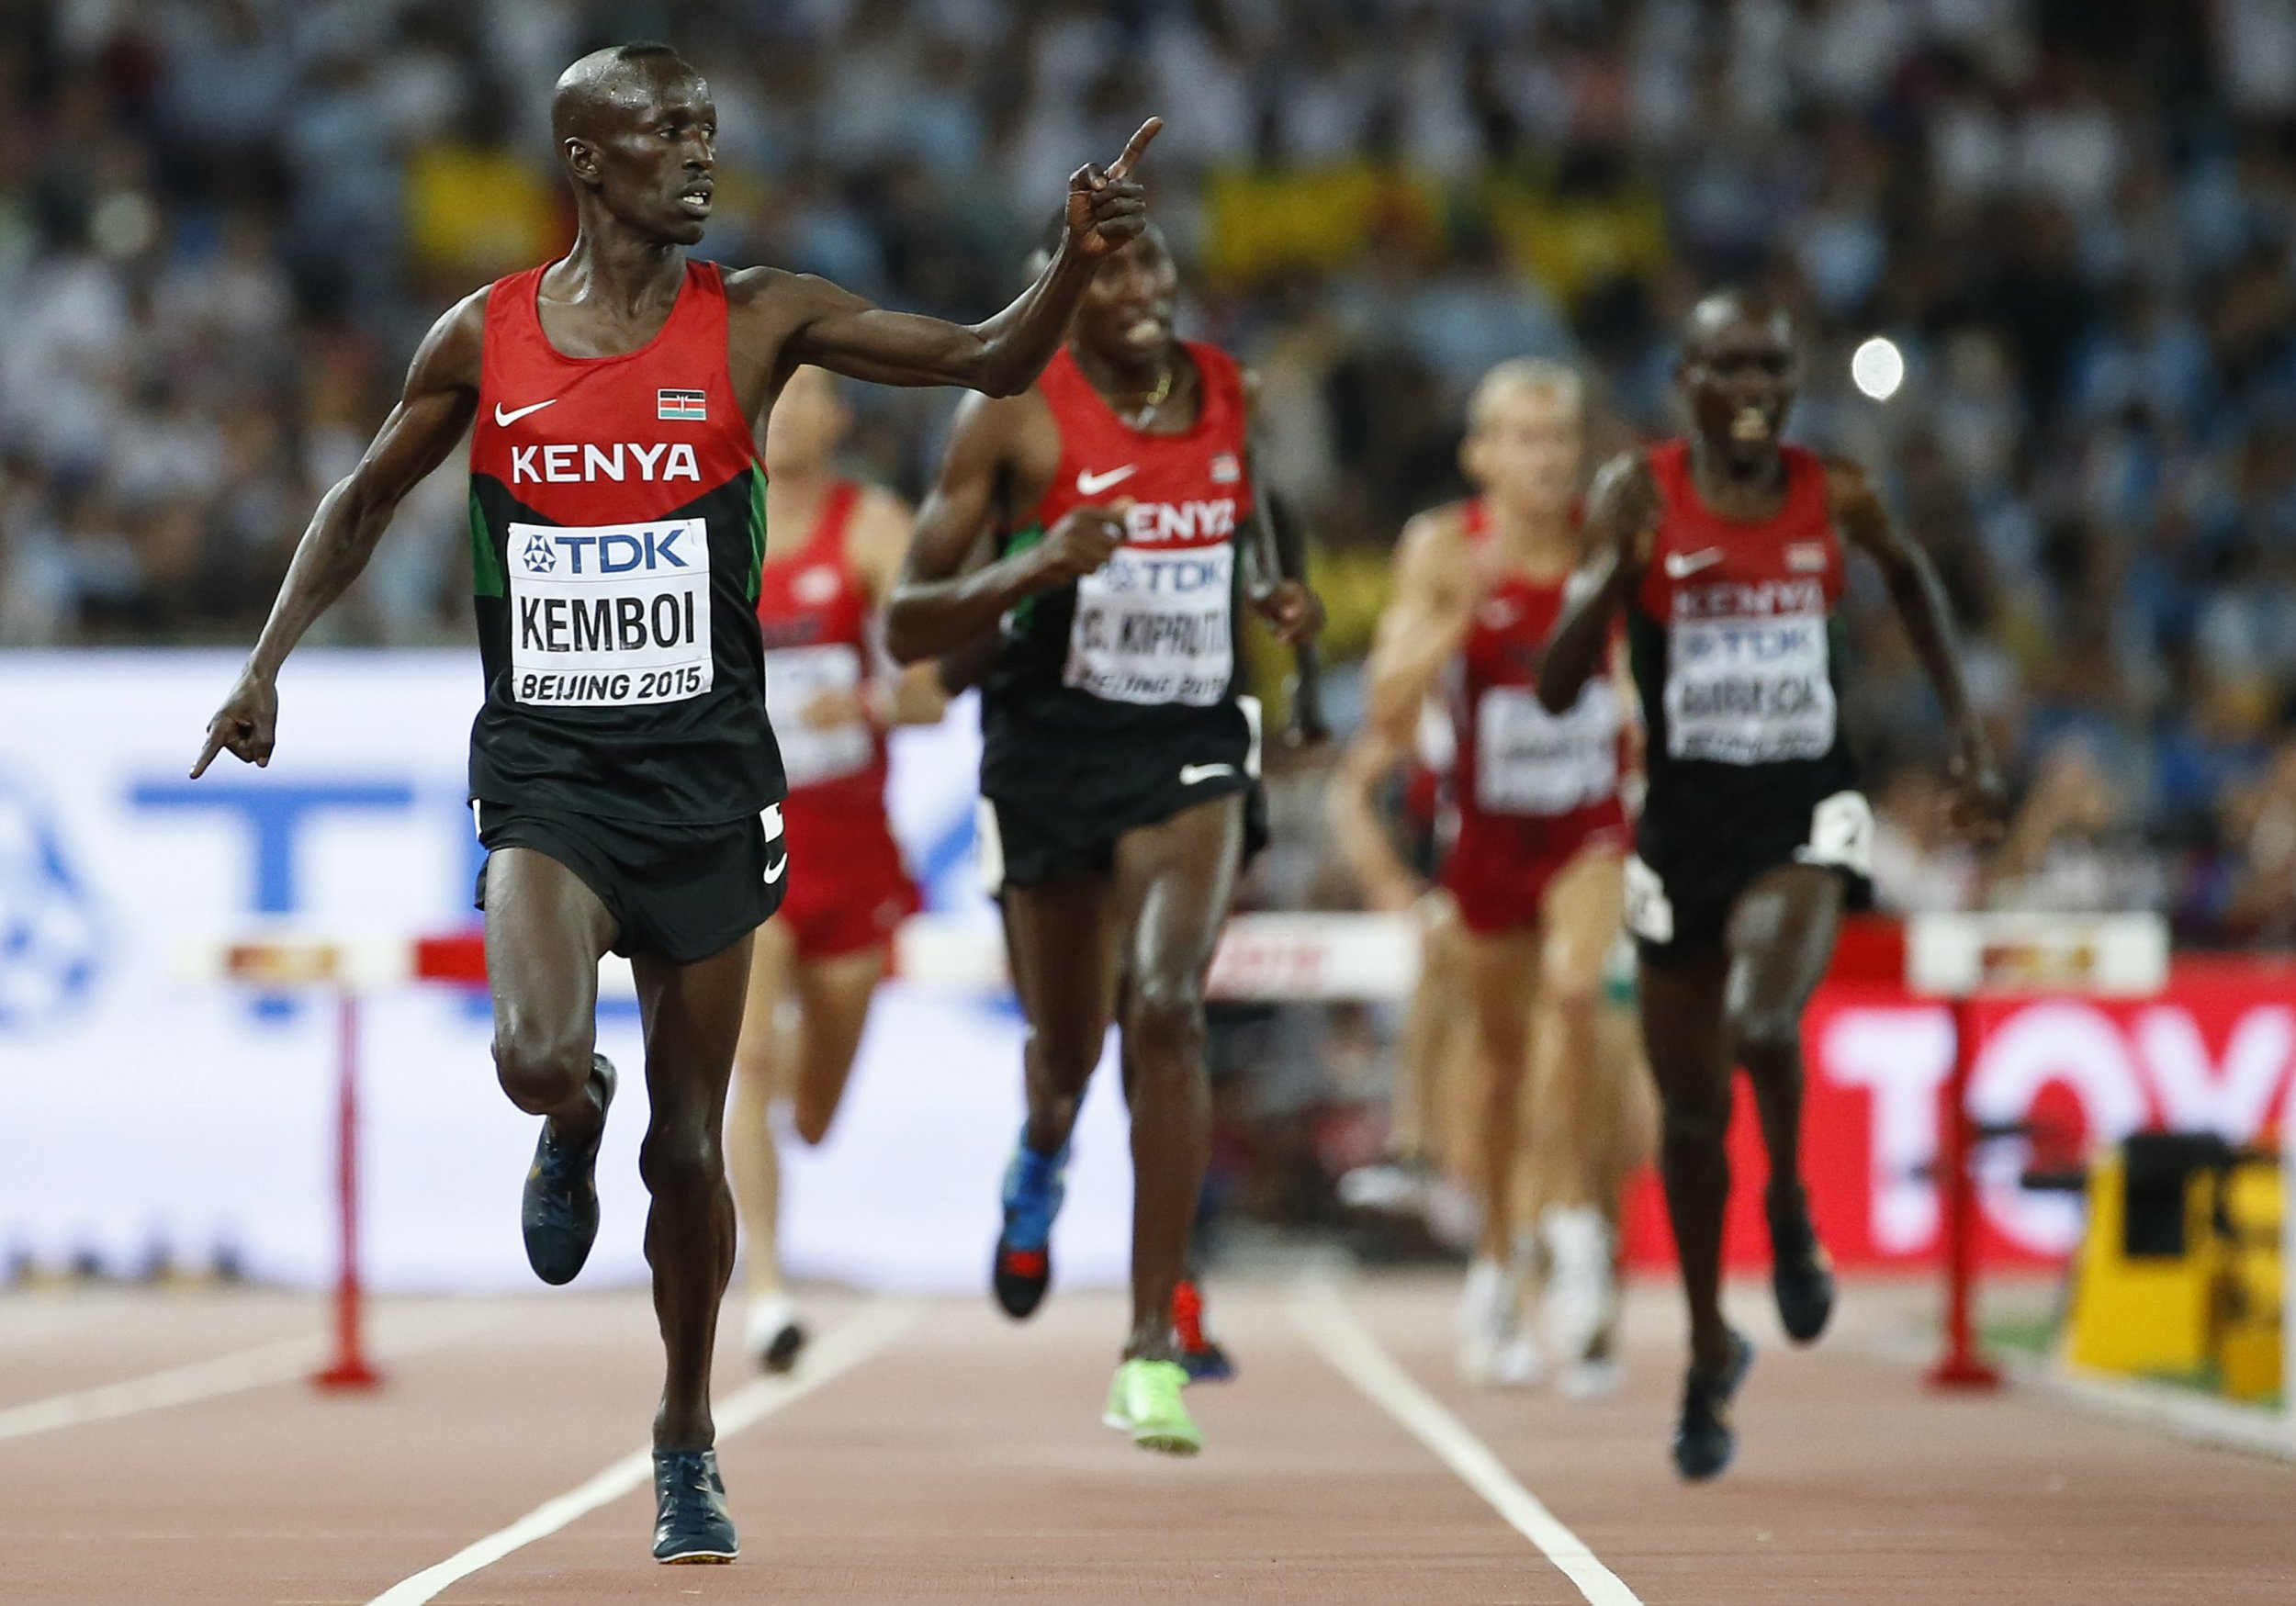 Kenyan athlete Ezekiel Kemboi wins gold at the World Championships in Beijing.